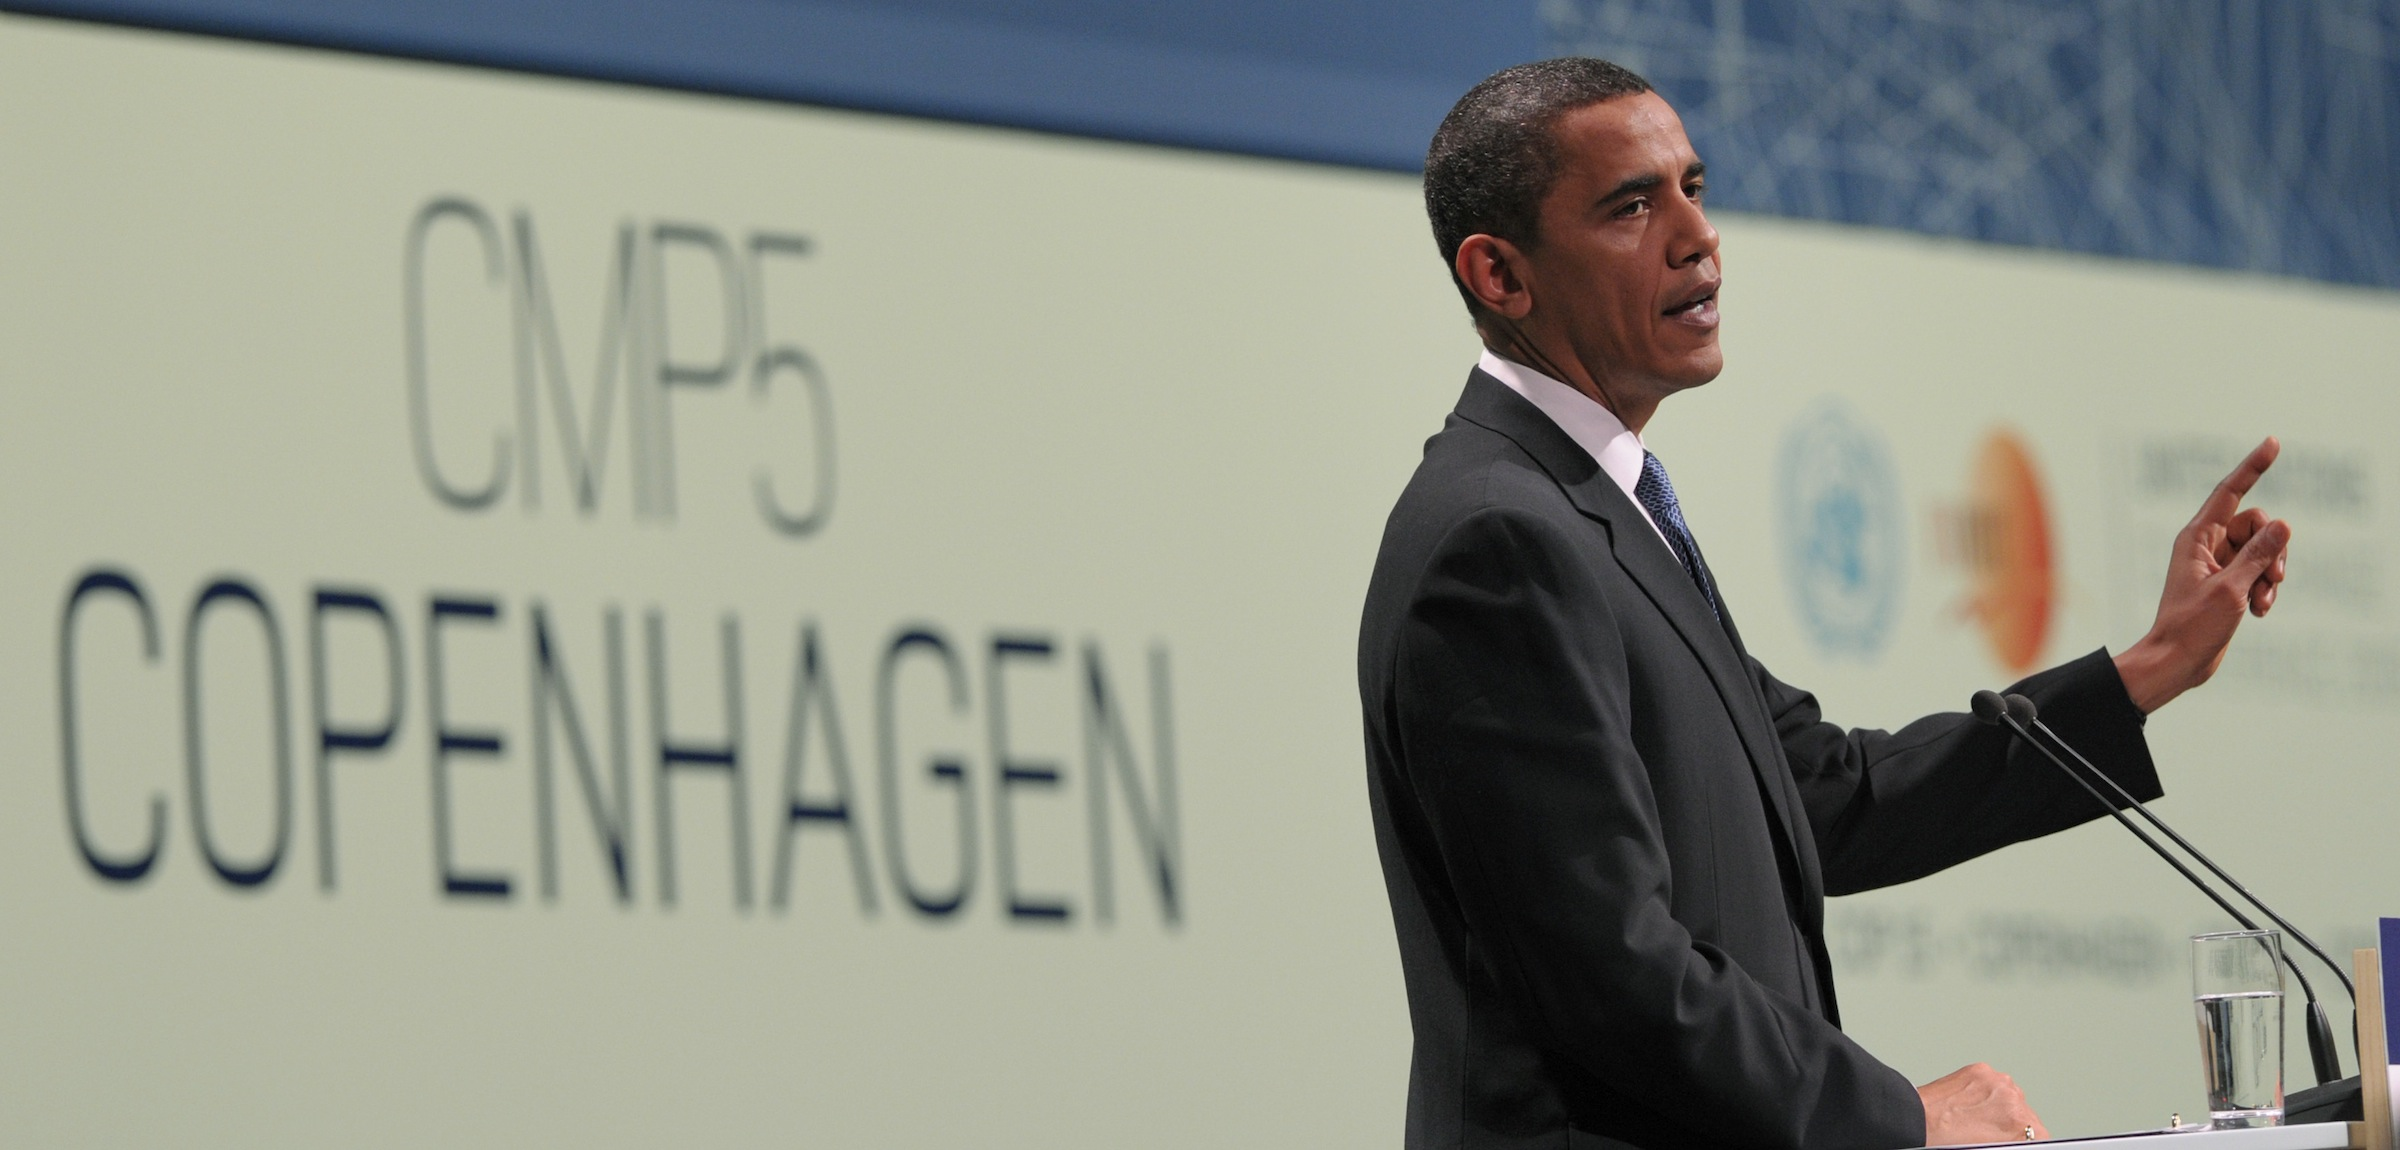 President Barack Obama speaks at the morning plenary session of the United Nations Climate Change Conference at the Bella Center in Copenhagen, Denmark, Friday, Dec. 18, 2009. (AP Photo/Susan Walsh)